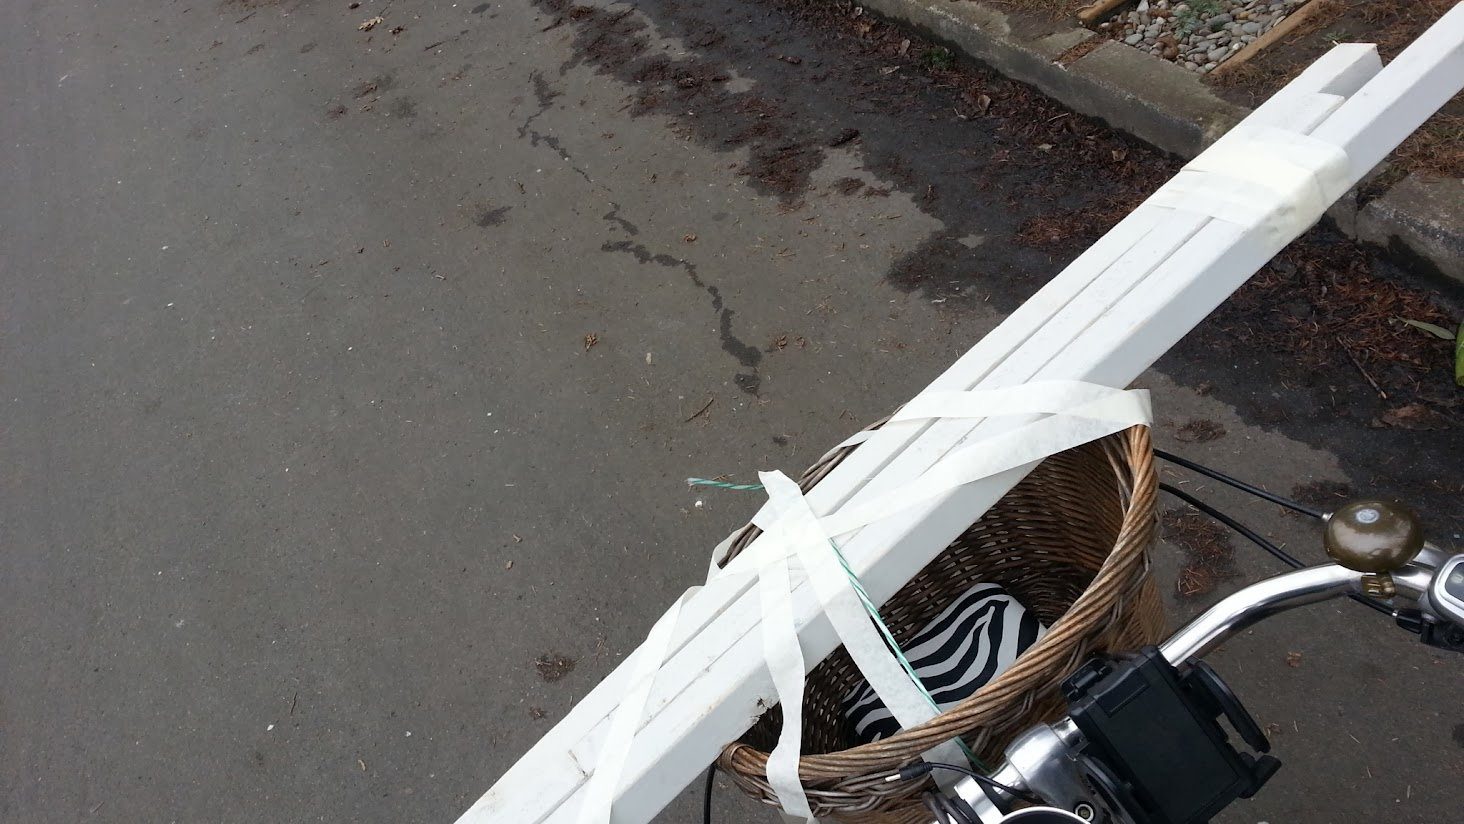 White two by two lumber taped and tied across the basket on Eleanor O the Dutch Bike's handlebars